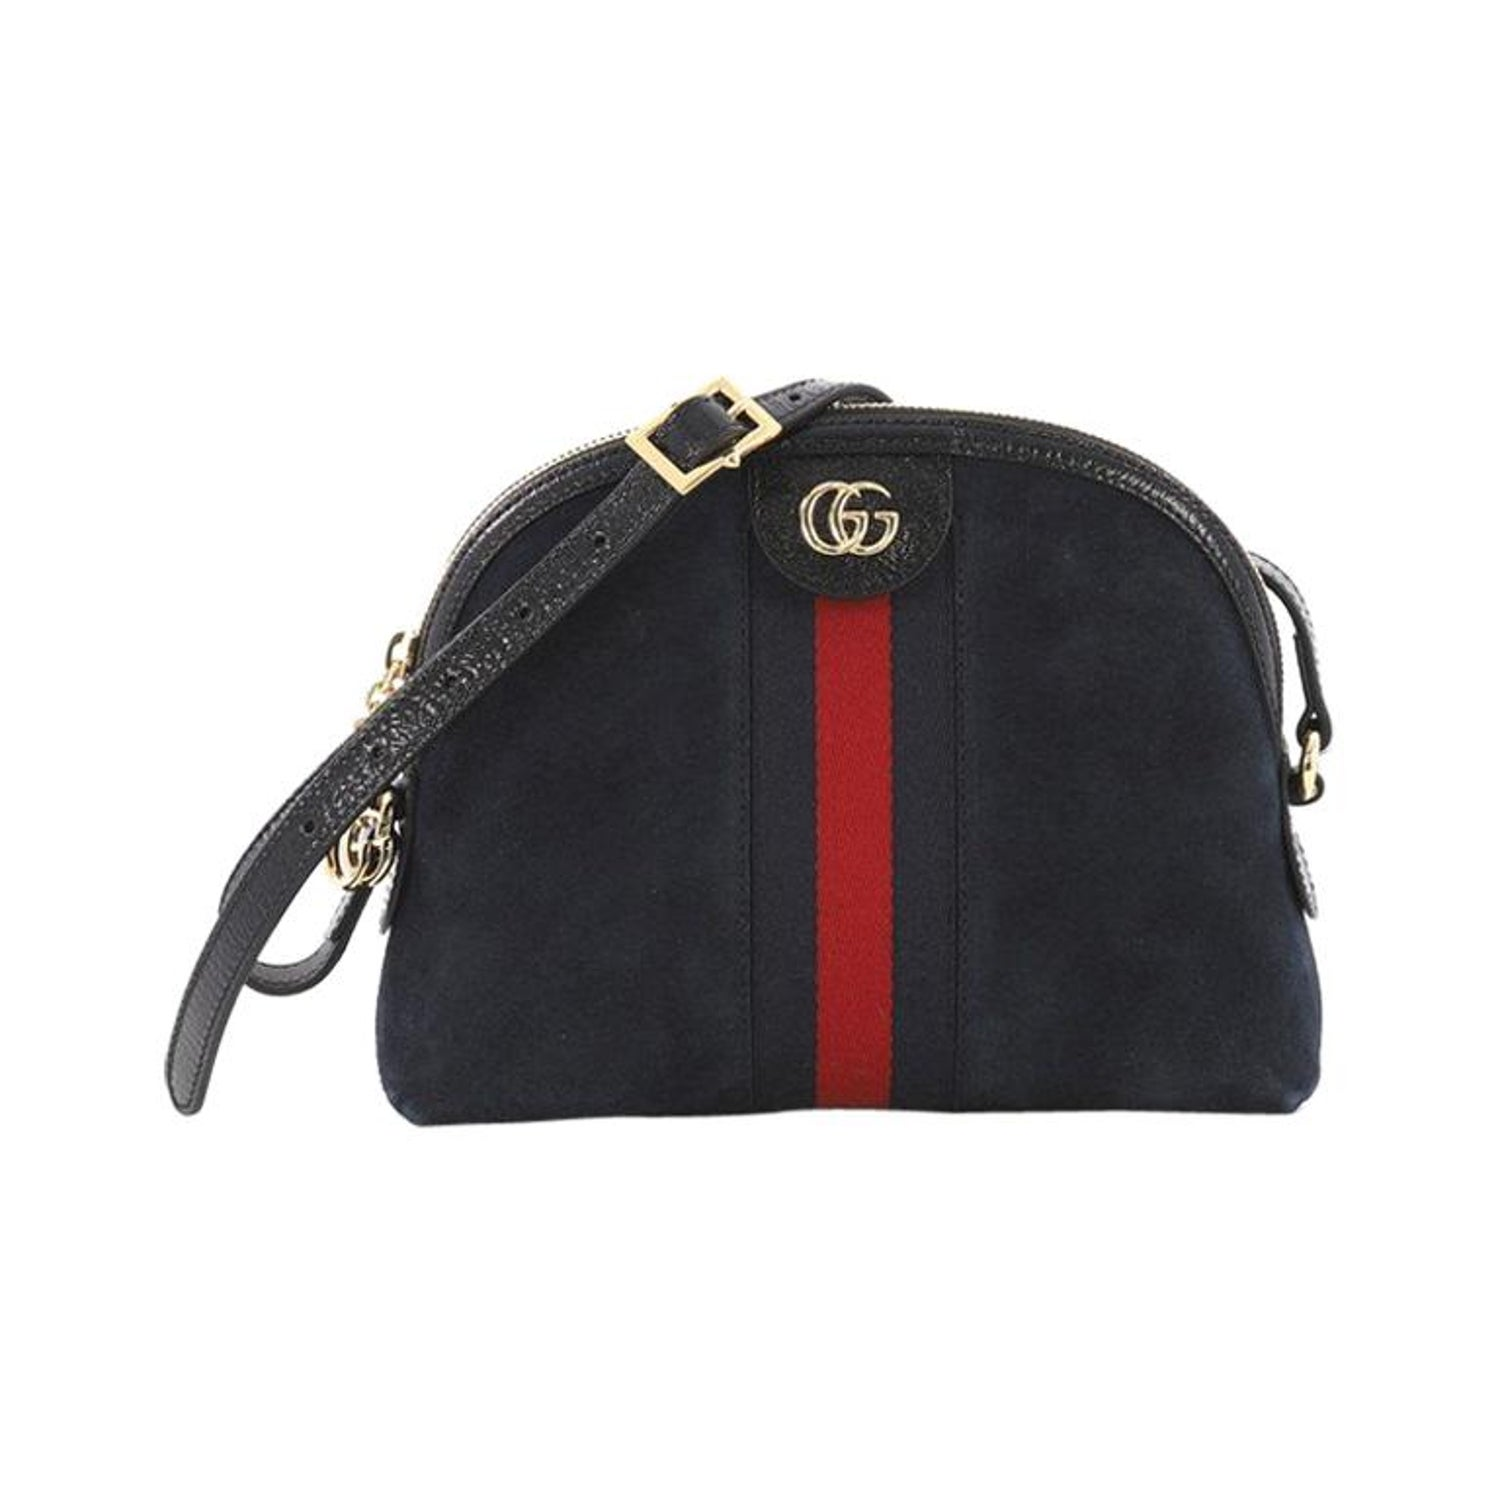 e1d42f8d9 Gucci Dionysus Web Stripe Small Leather Shoulder Bag